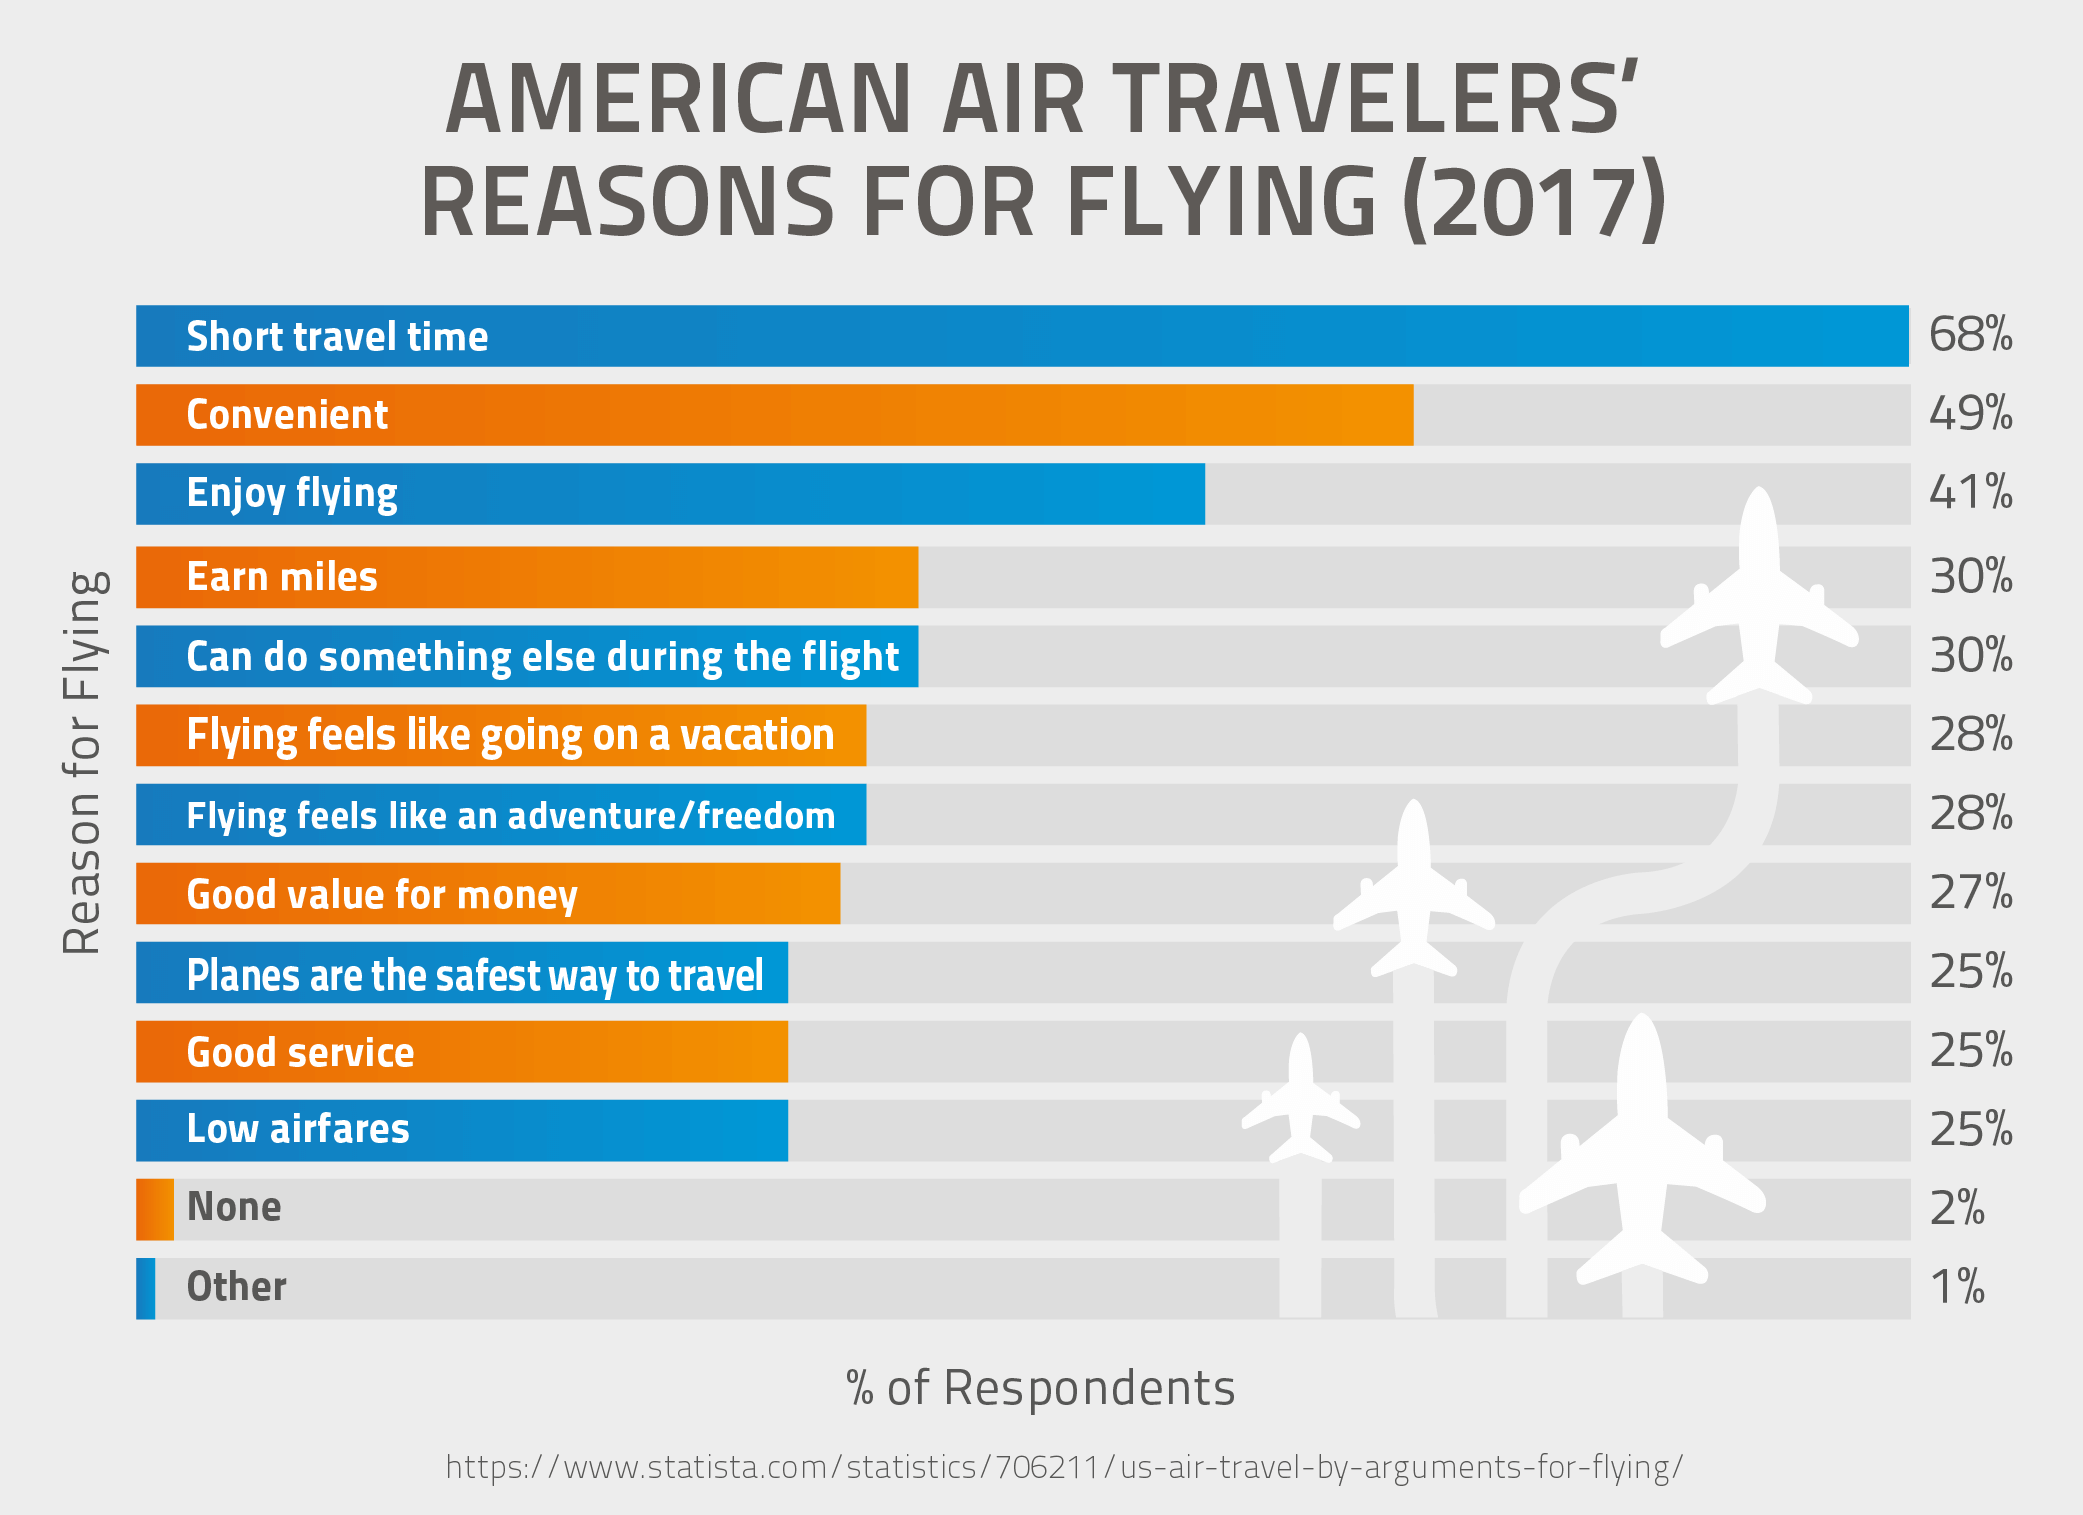 American Air Travelers' Reasons For Flying (2017)